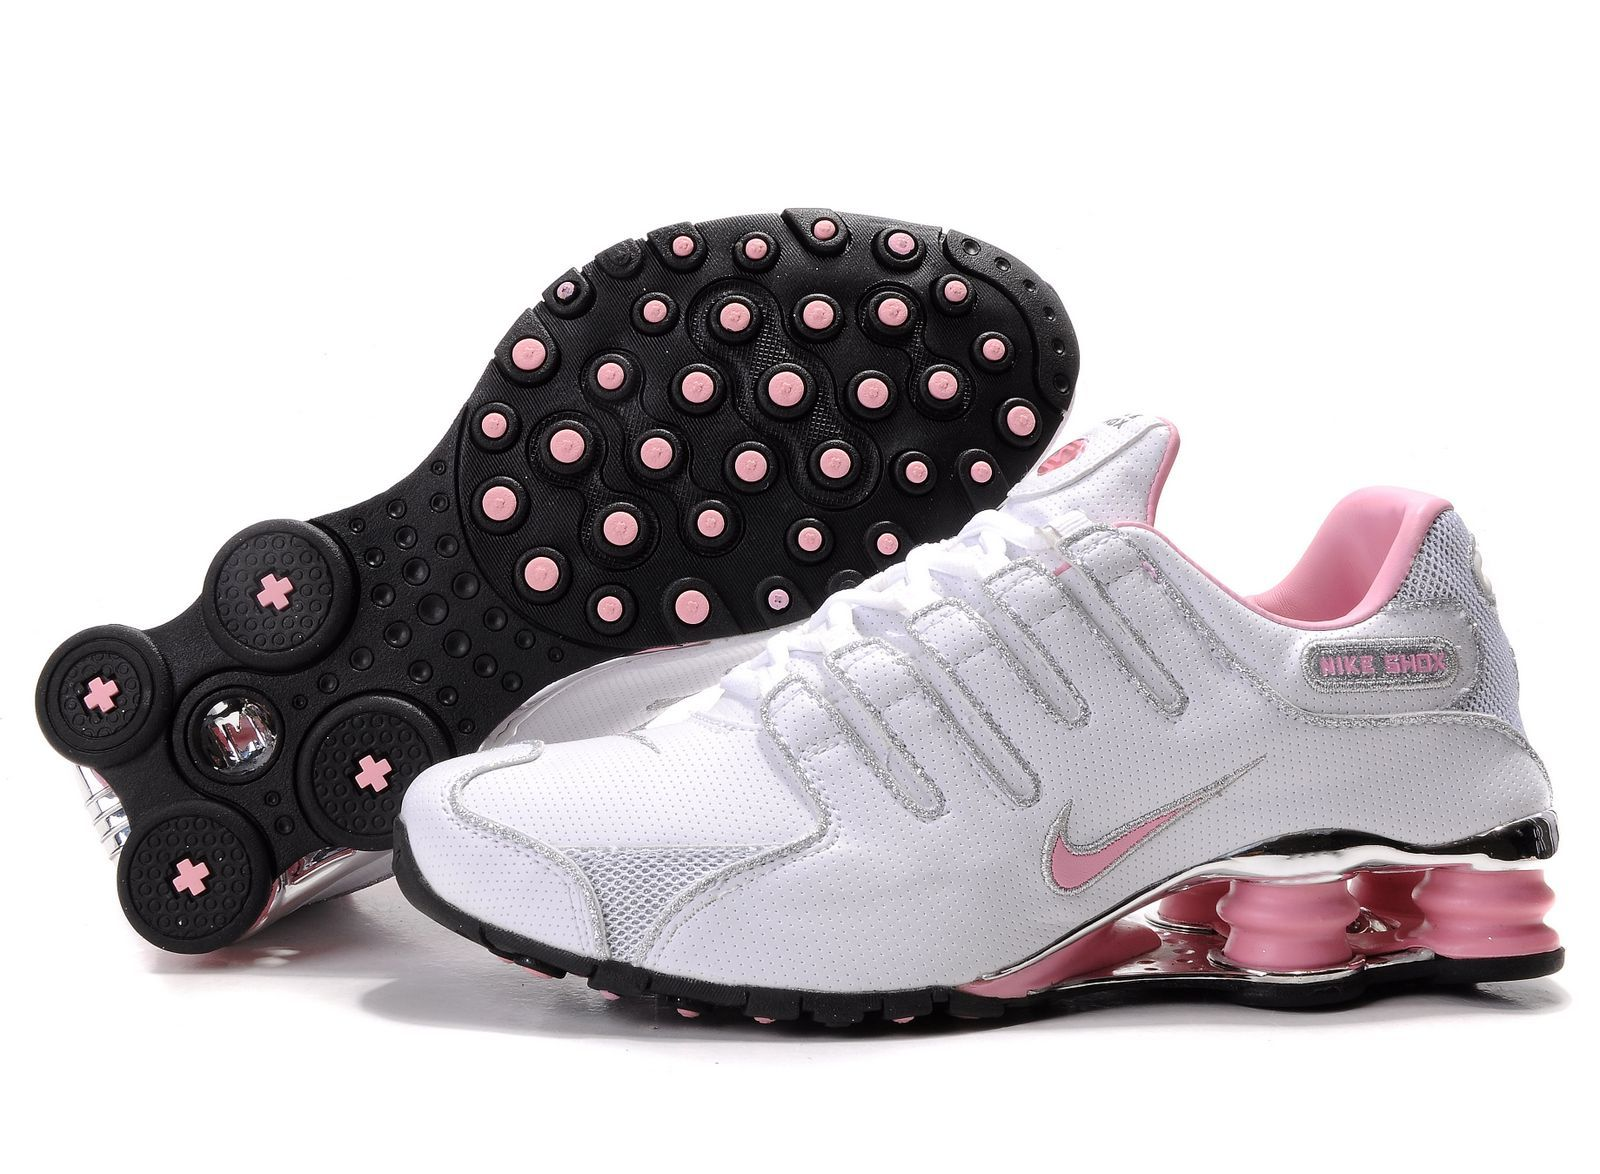 87d40054fb8 I loveee shoxs--.  Nike Casual  Shoes For  women